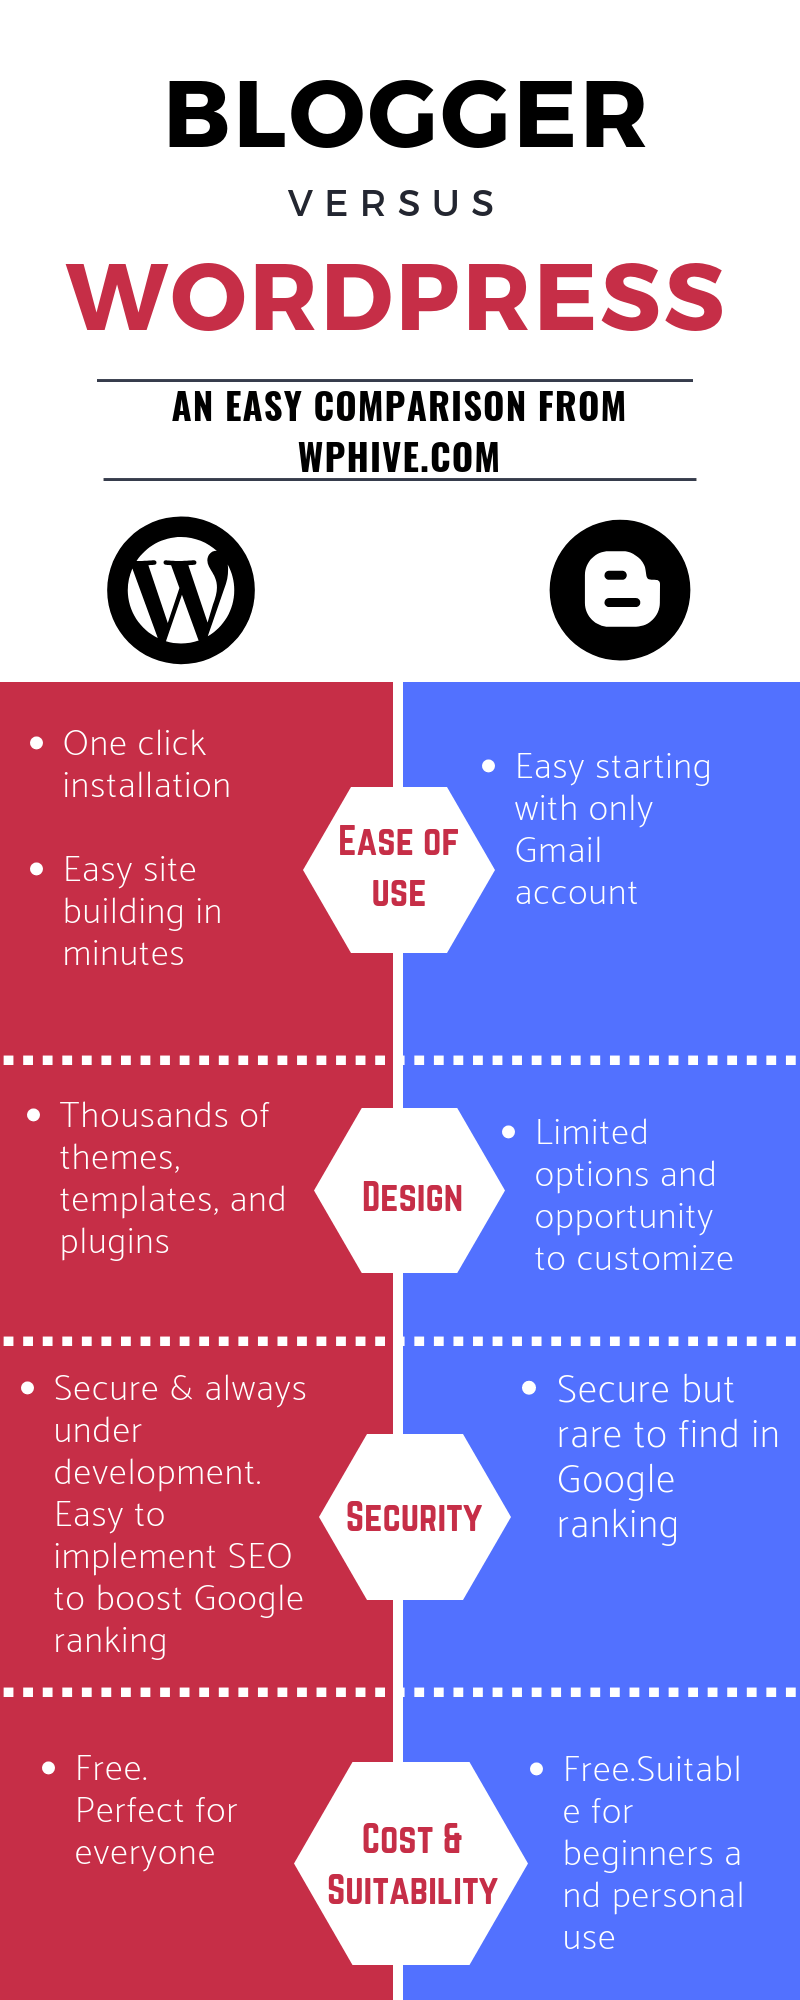 WordPress vs Blogger 2019 Infographic